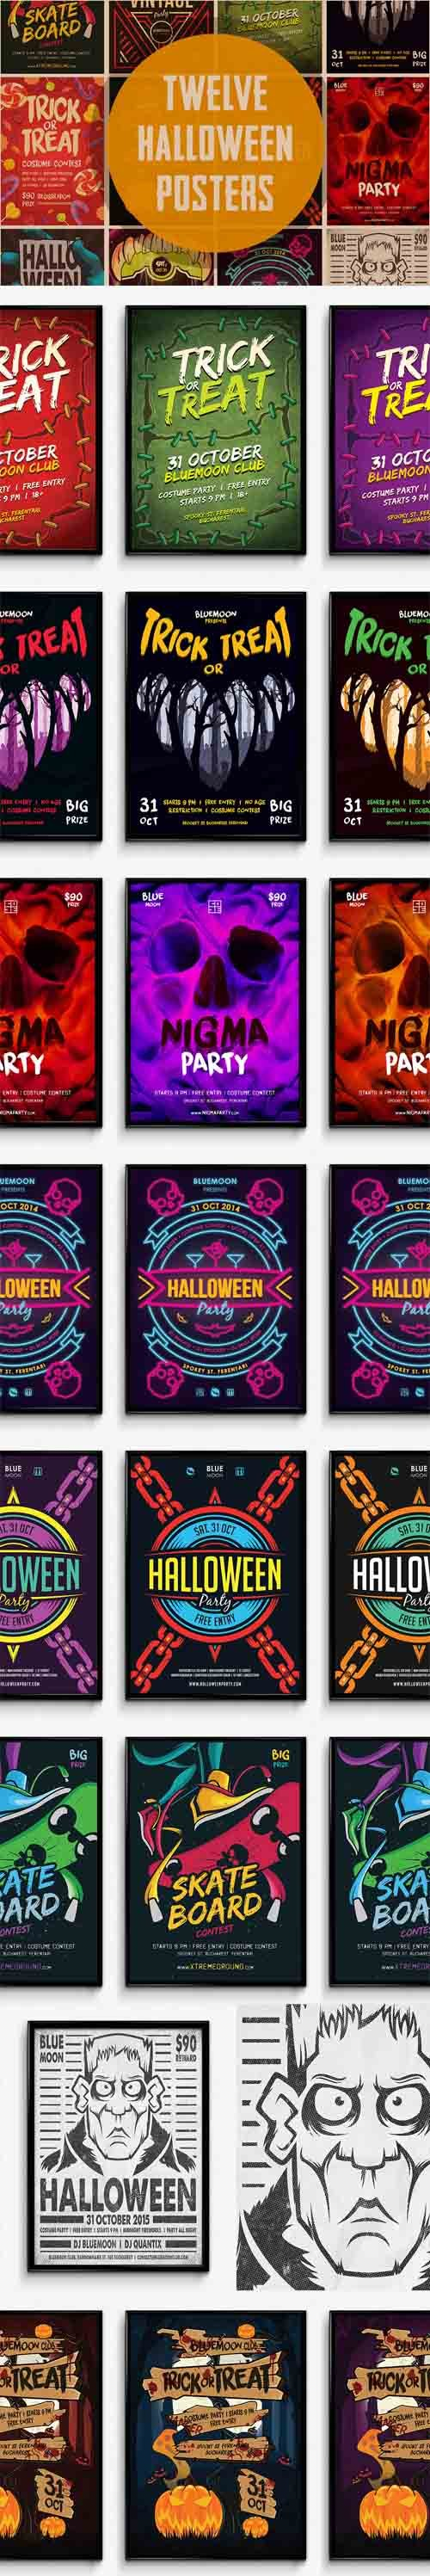 PSD - 12 Halloween Posters